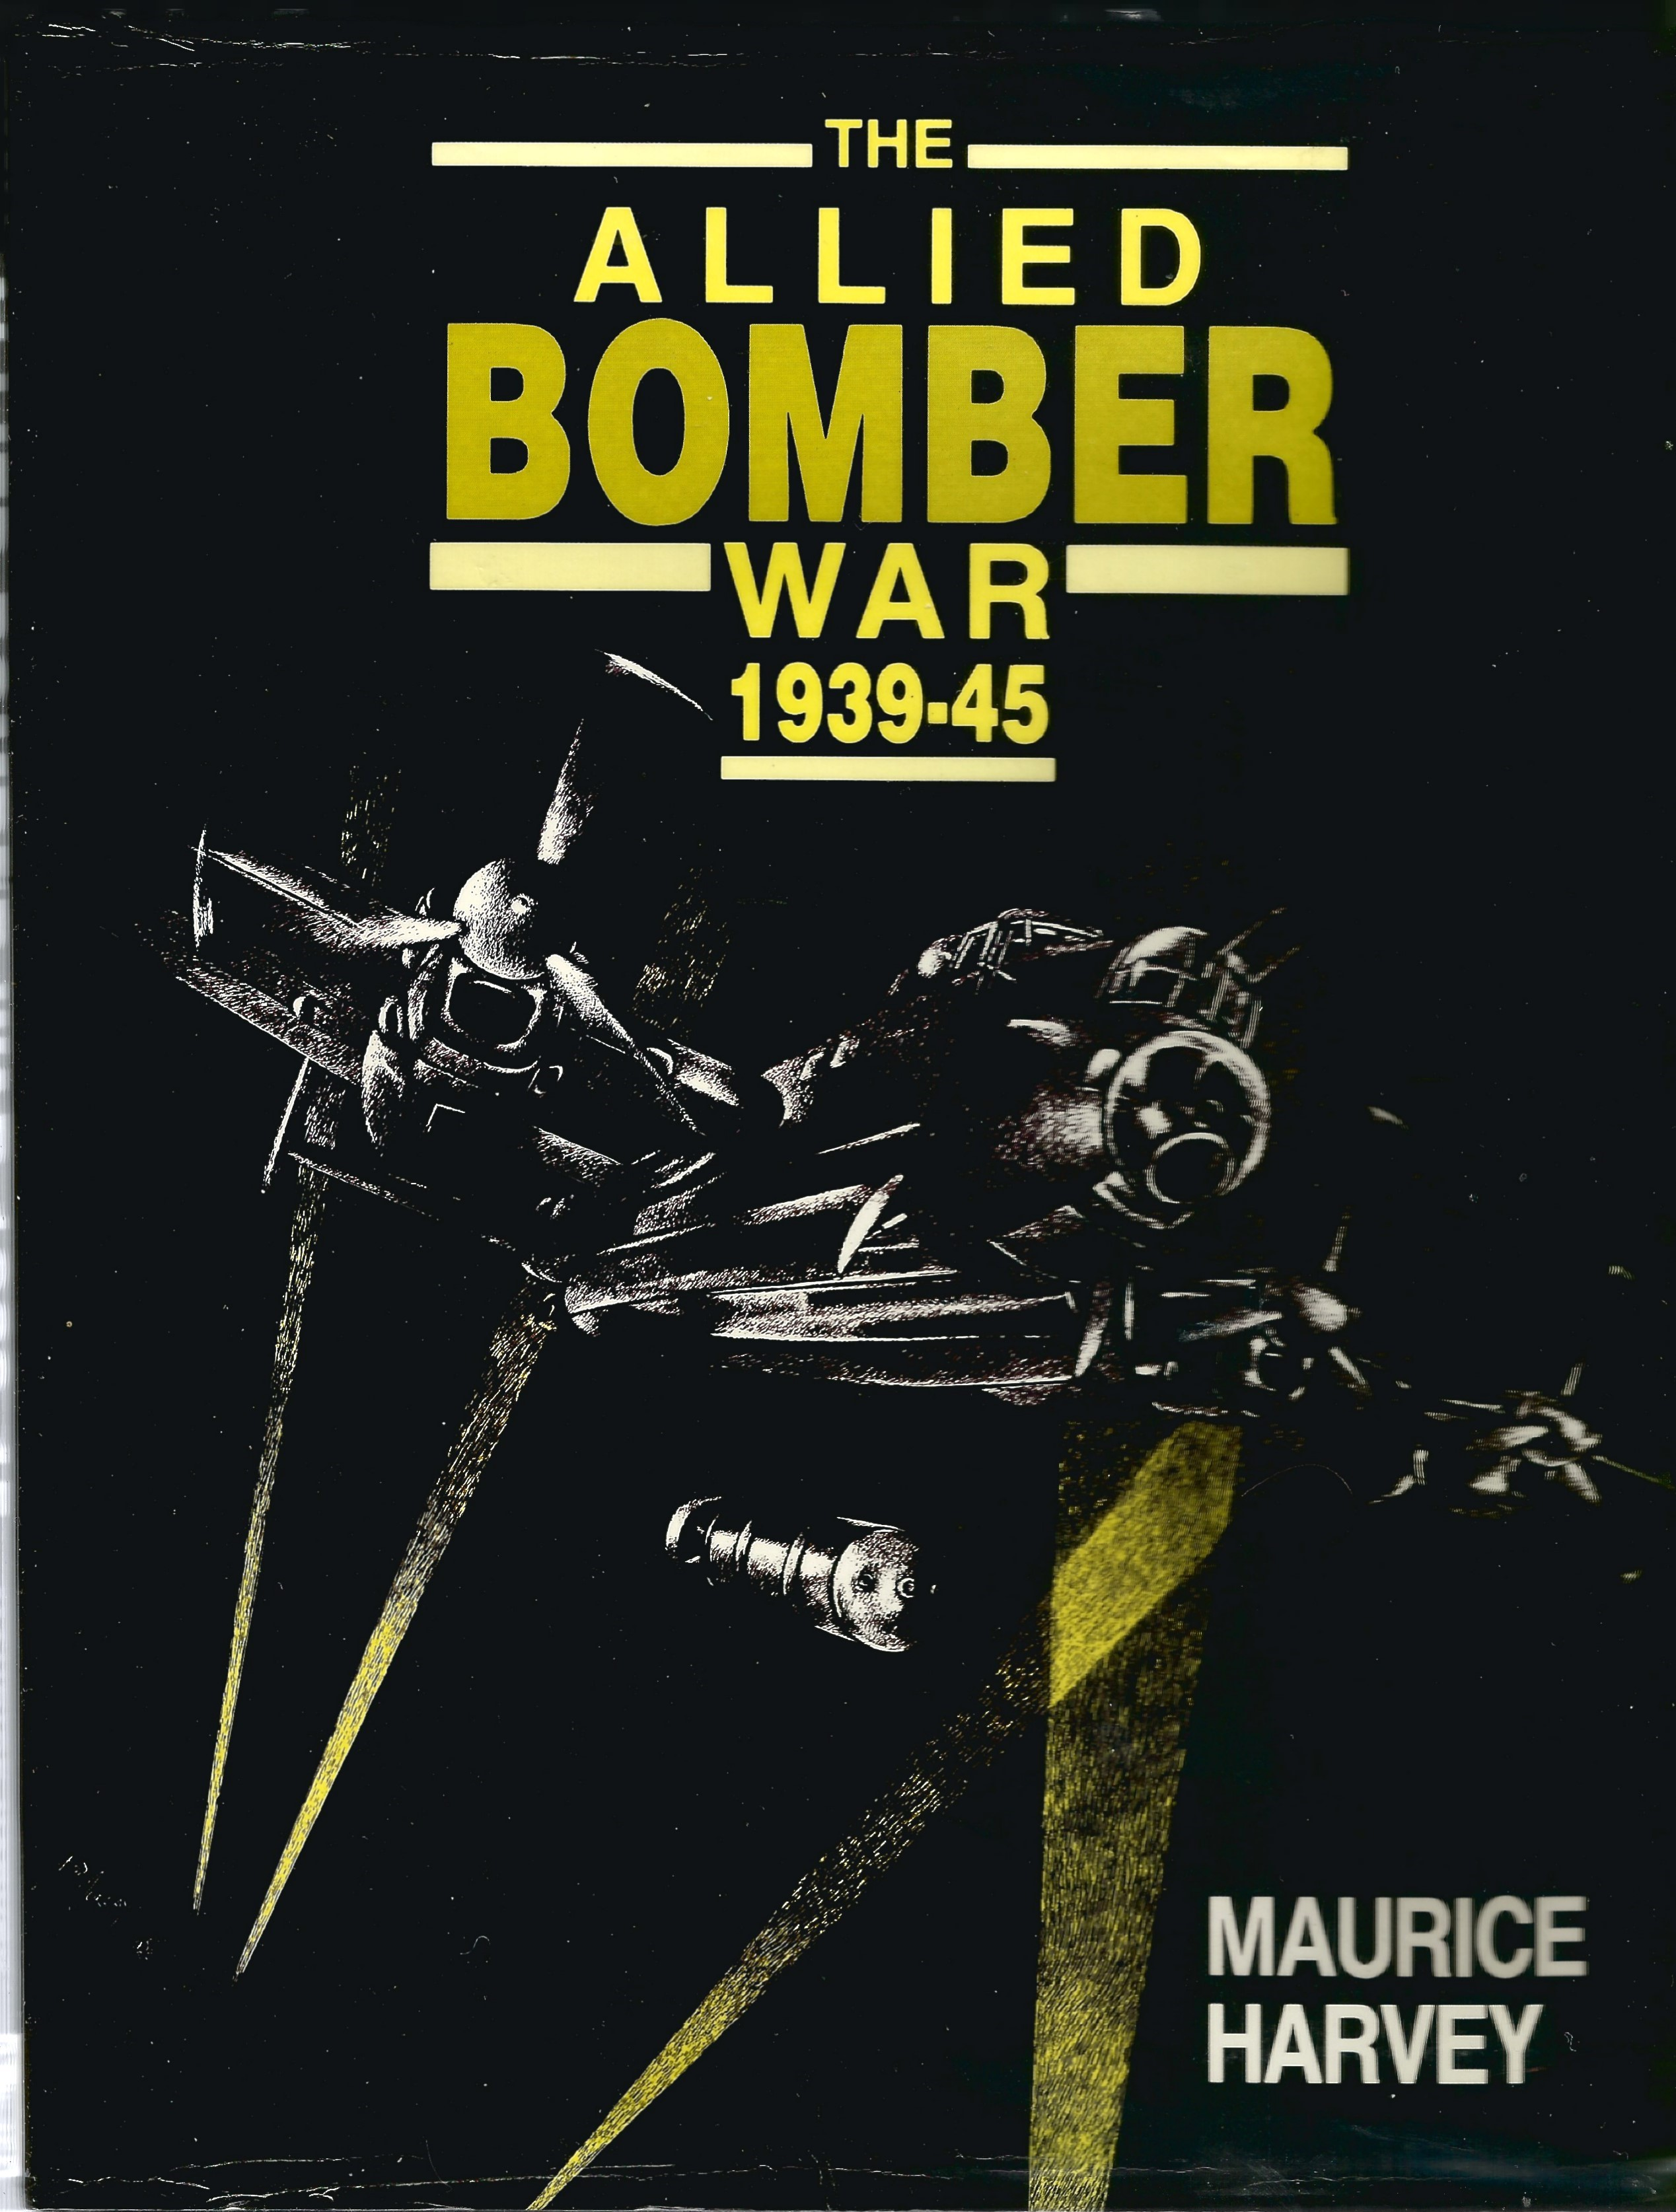 Maurice Harvey. The Allied Bomber War 1939 45. First Edition WW2 hardback book in good condition.